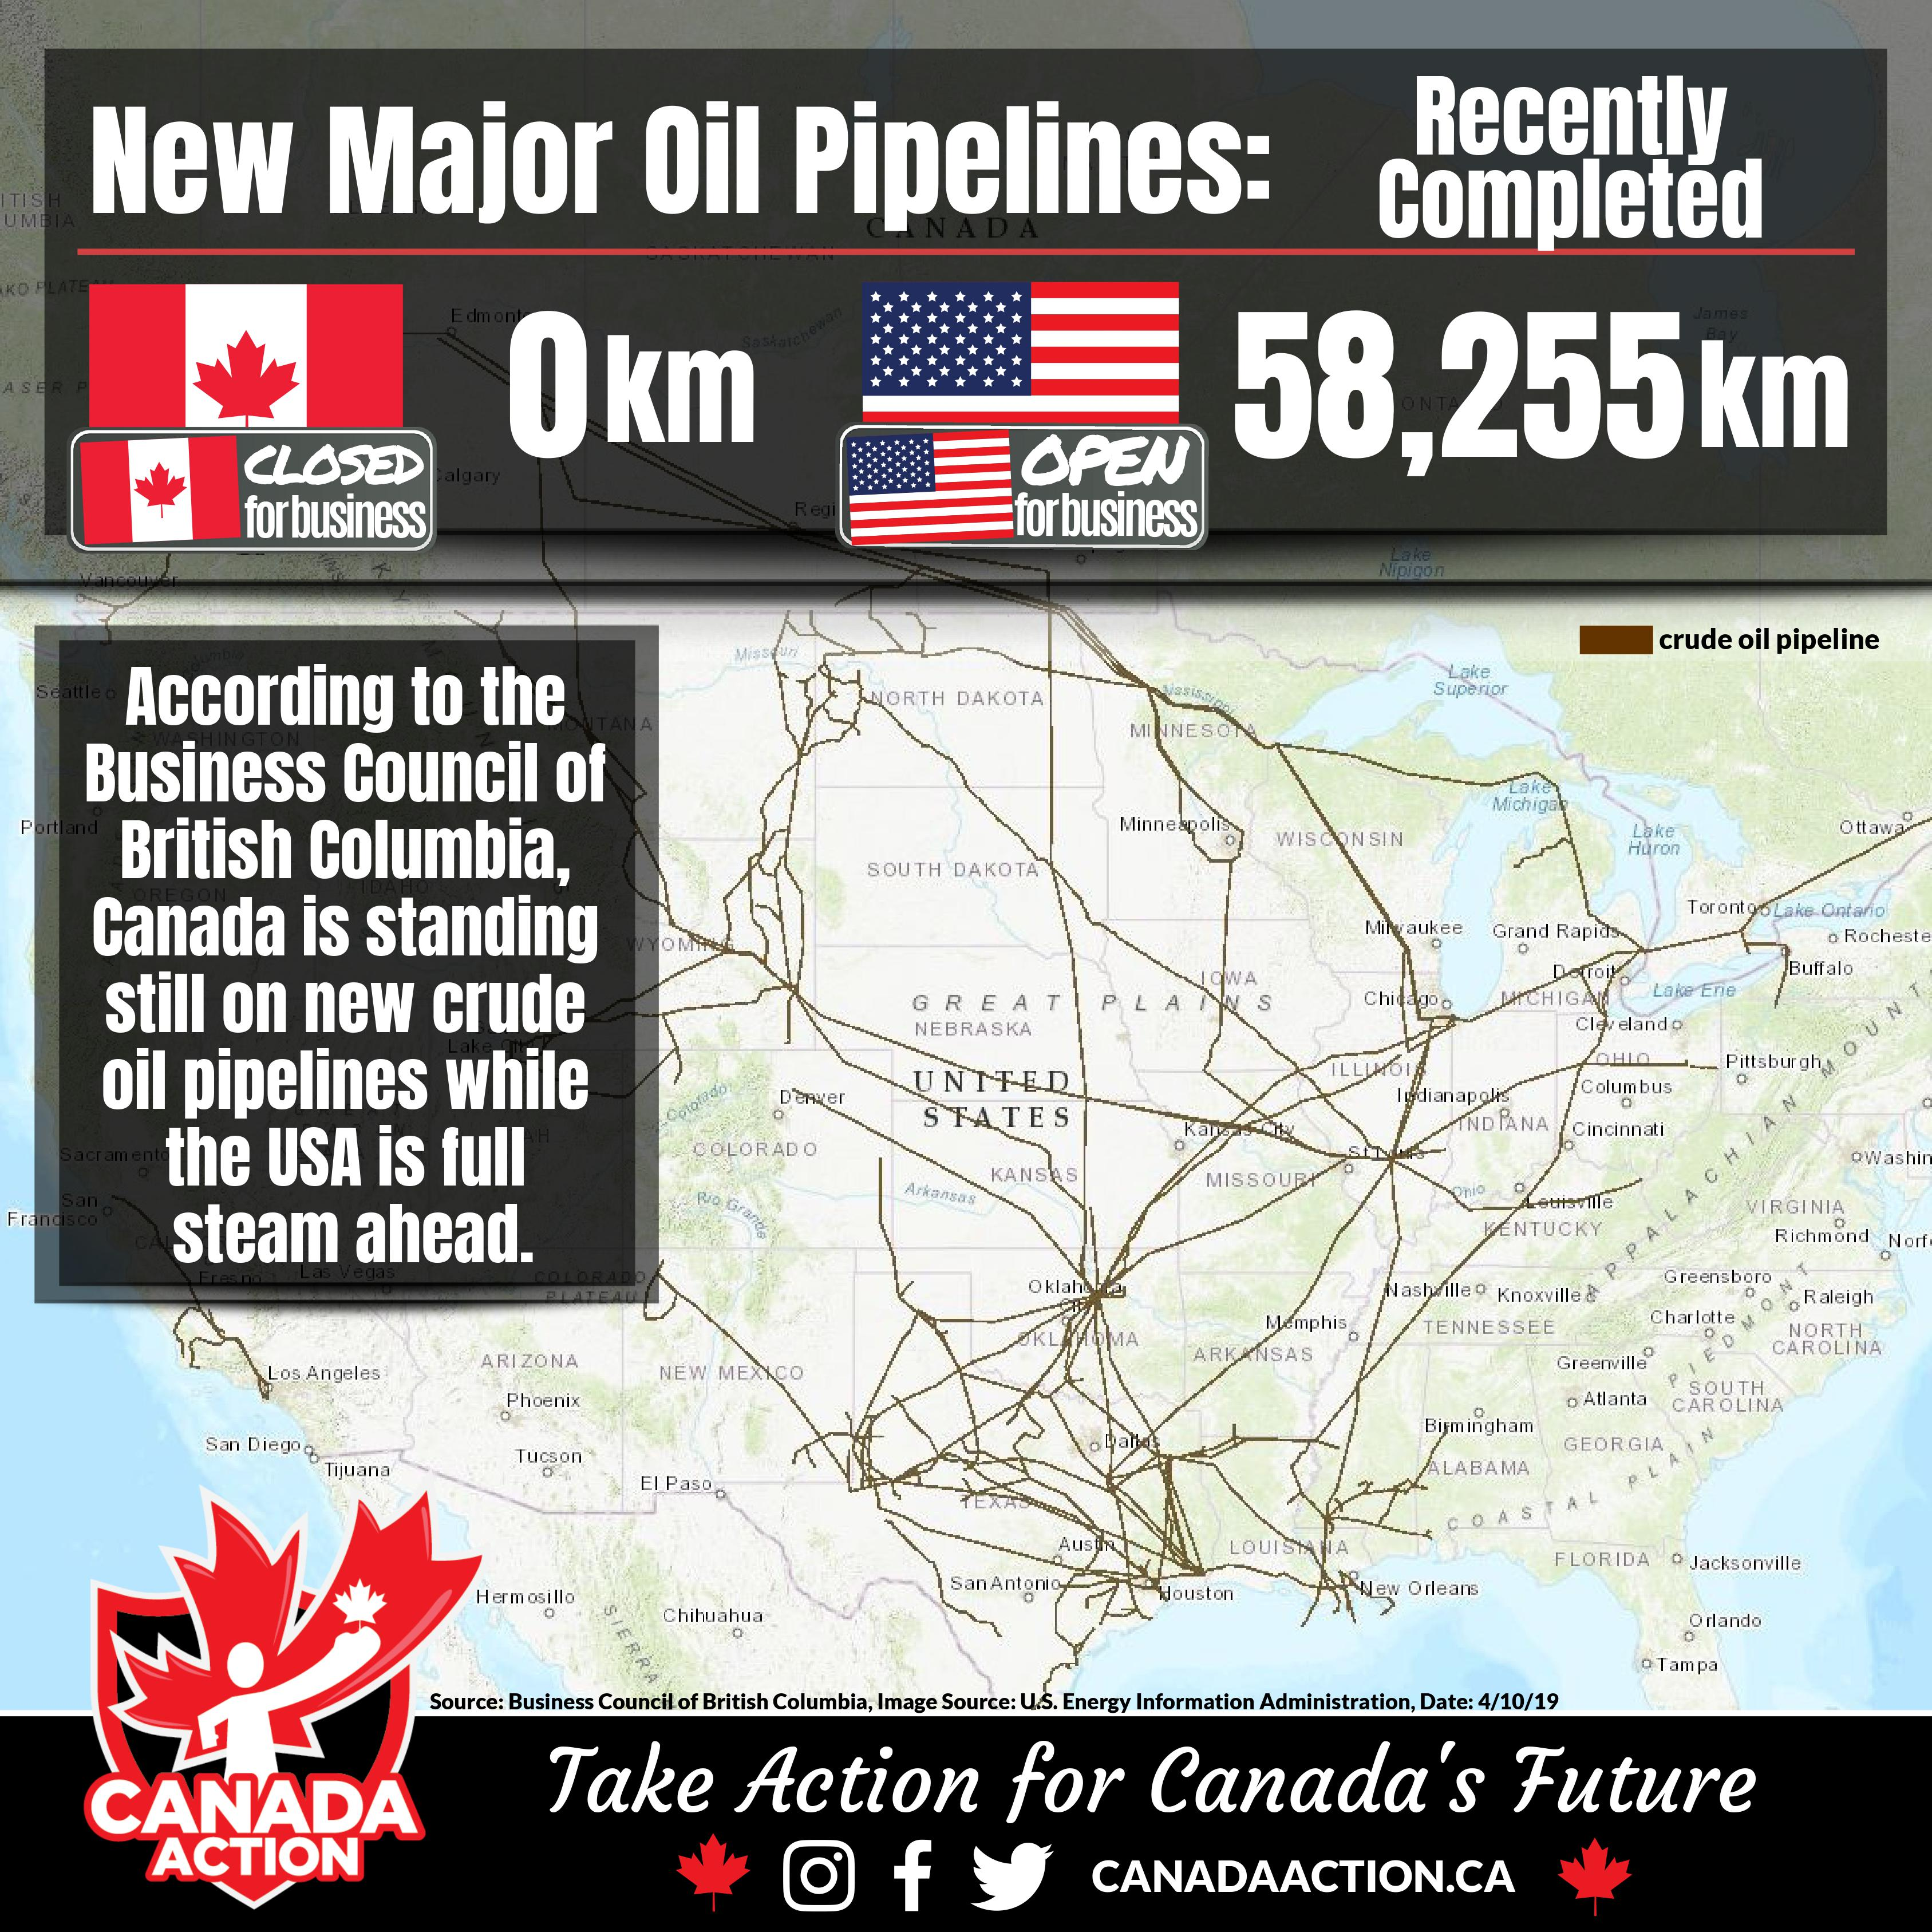 crude oil pipelines recently built - canada vs. USA